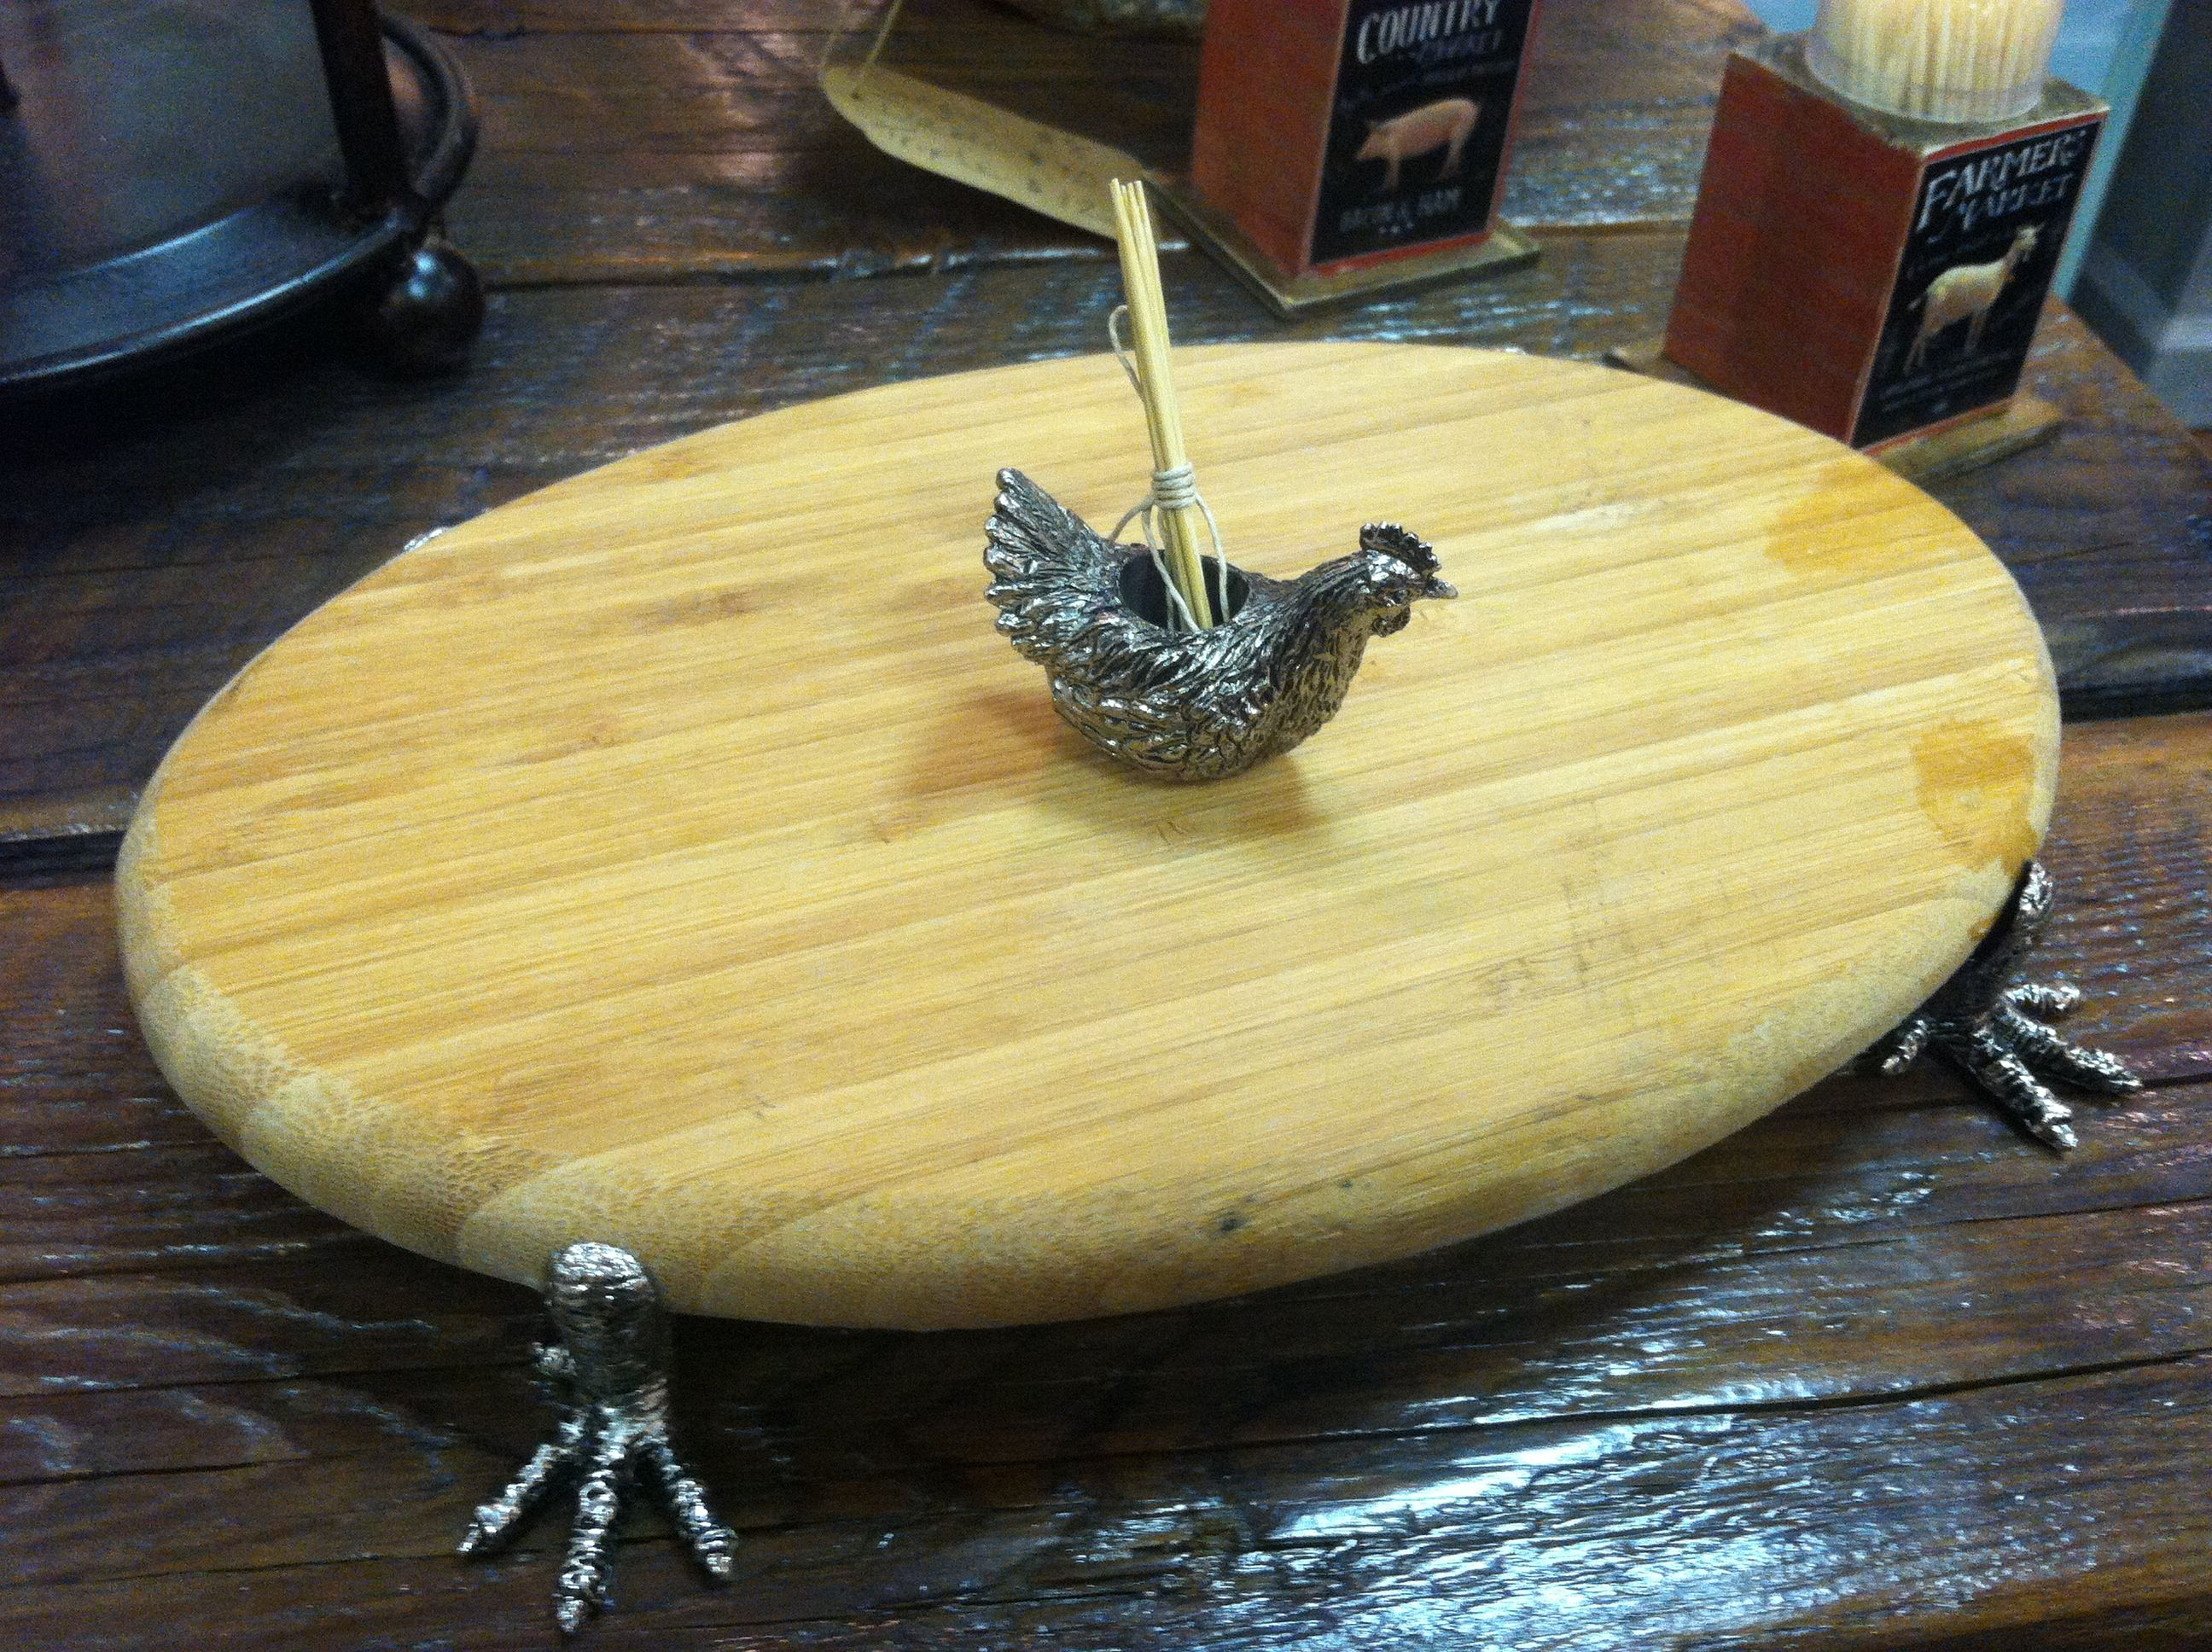 Chicken foot cutting board with weighted chicken toothpick holder